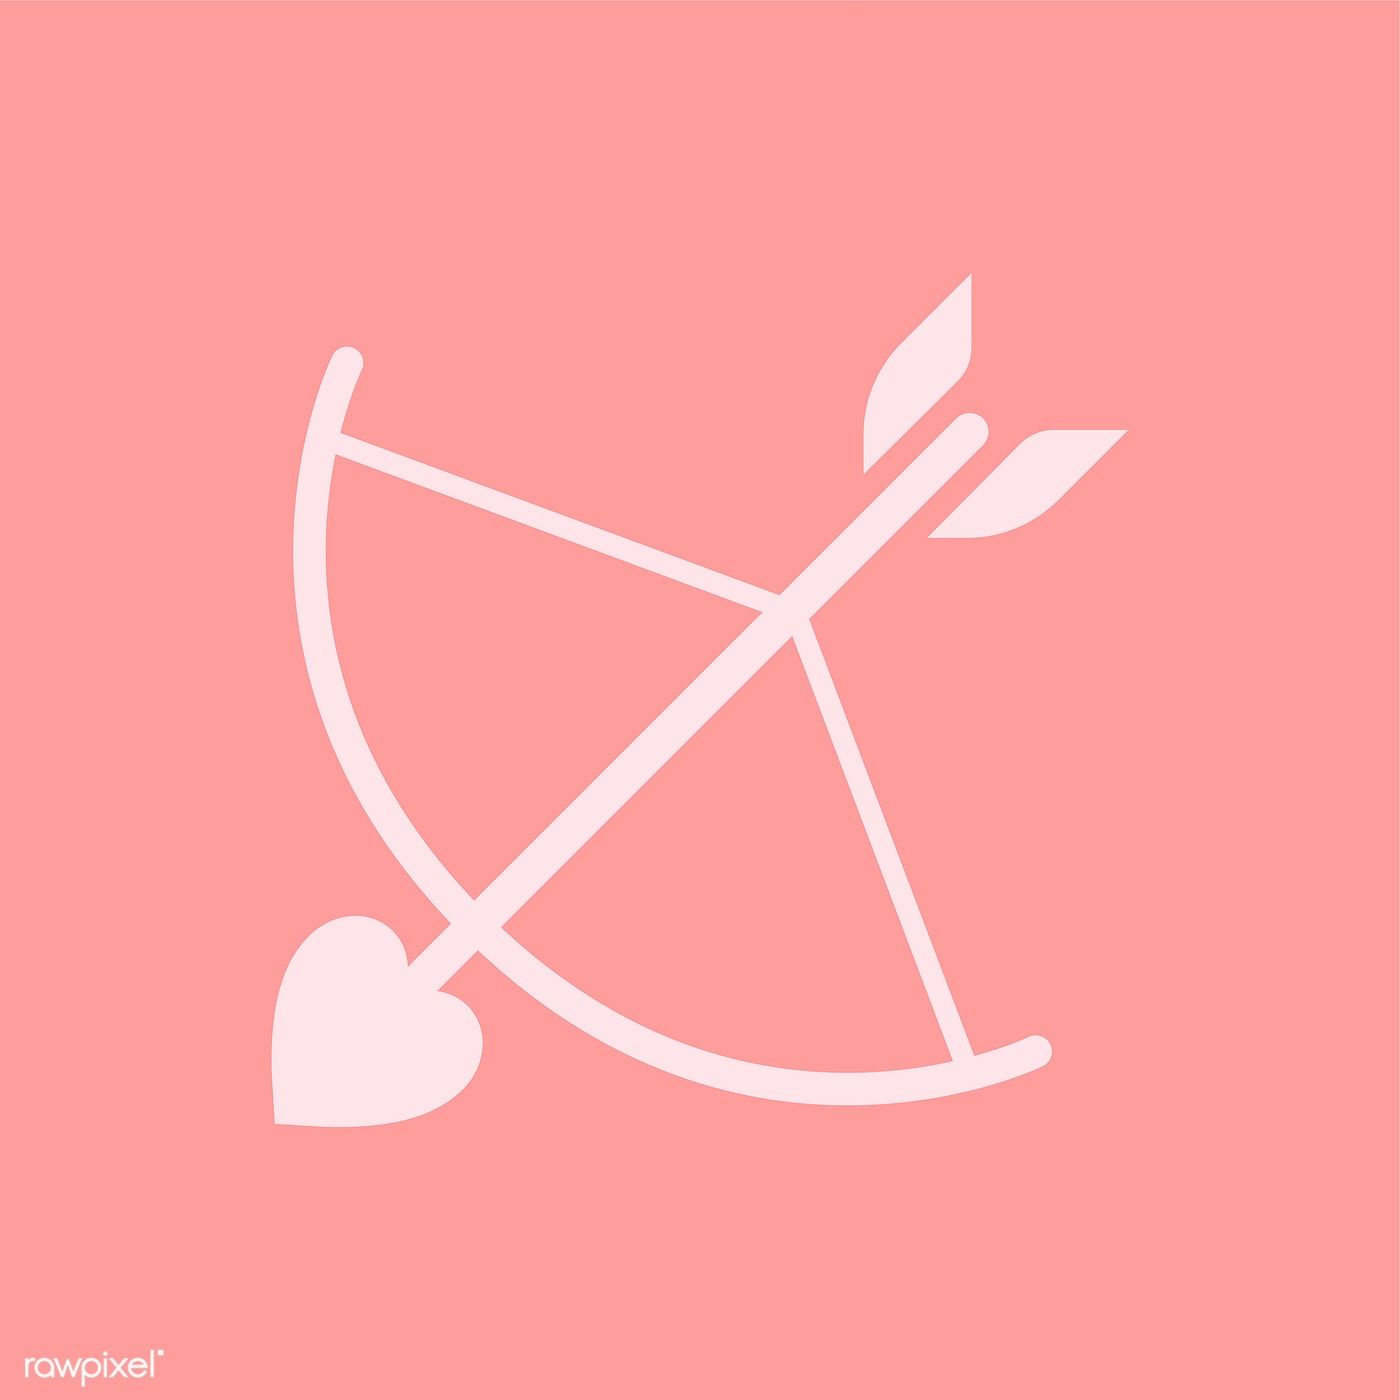 Bow And Arrow Cupid Icon Free Image By Rawpixel Com Manotang Arrows Graphic Archery Logo Cupid